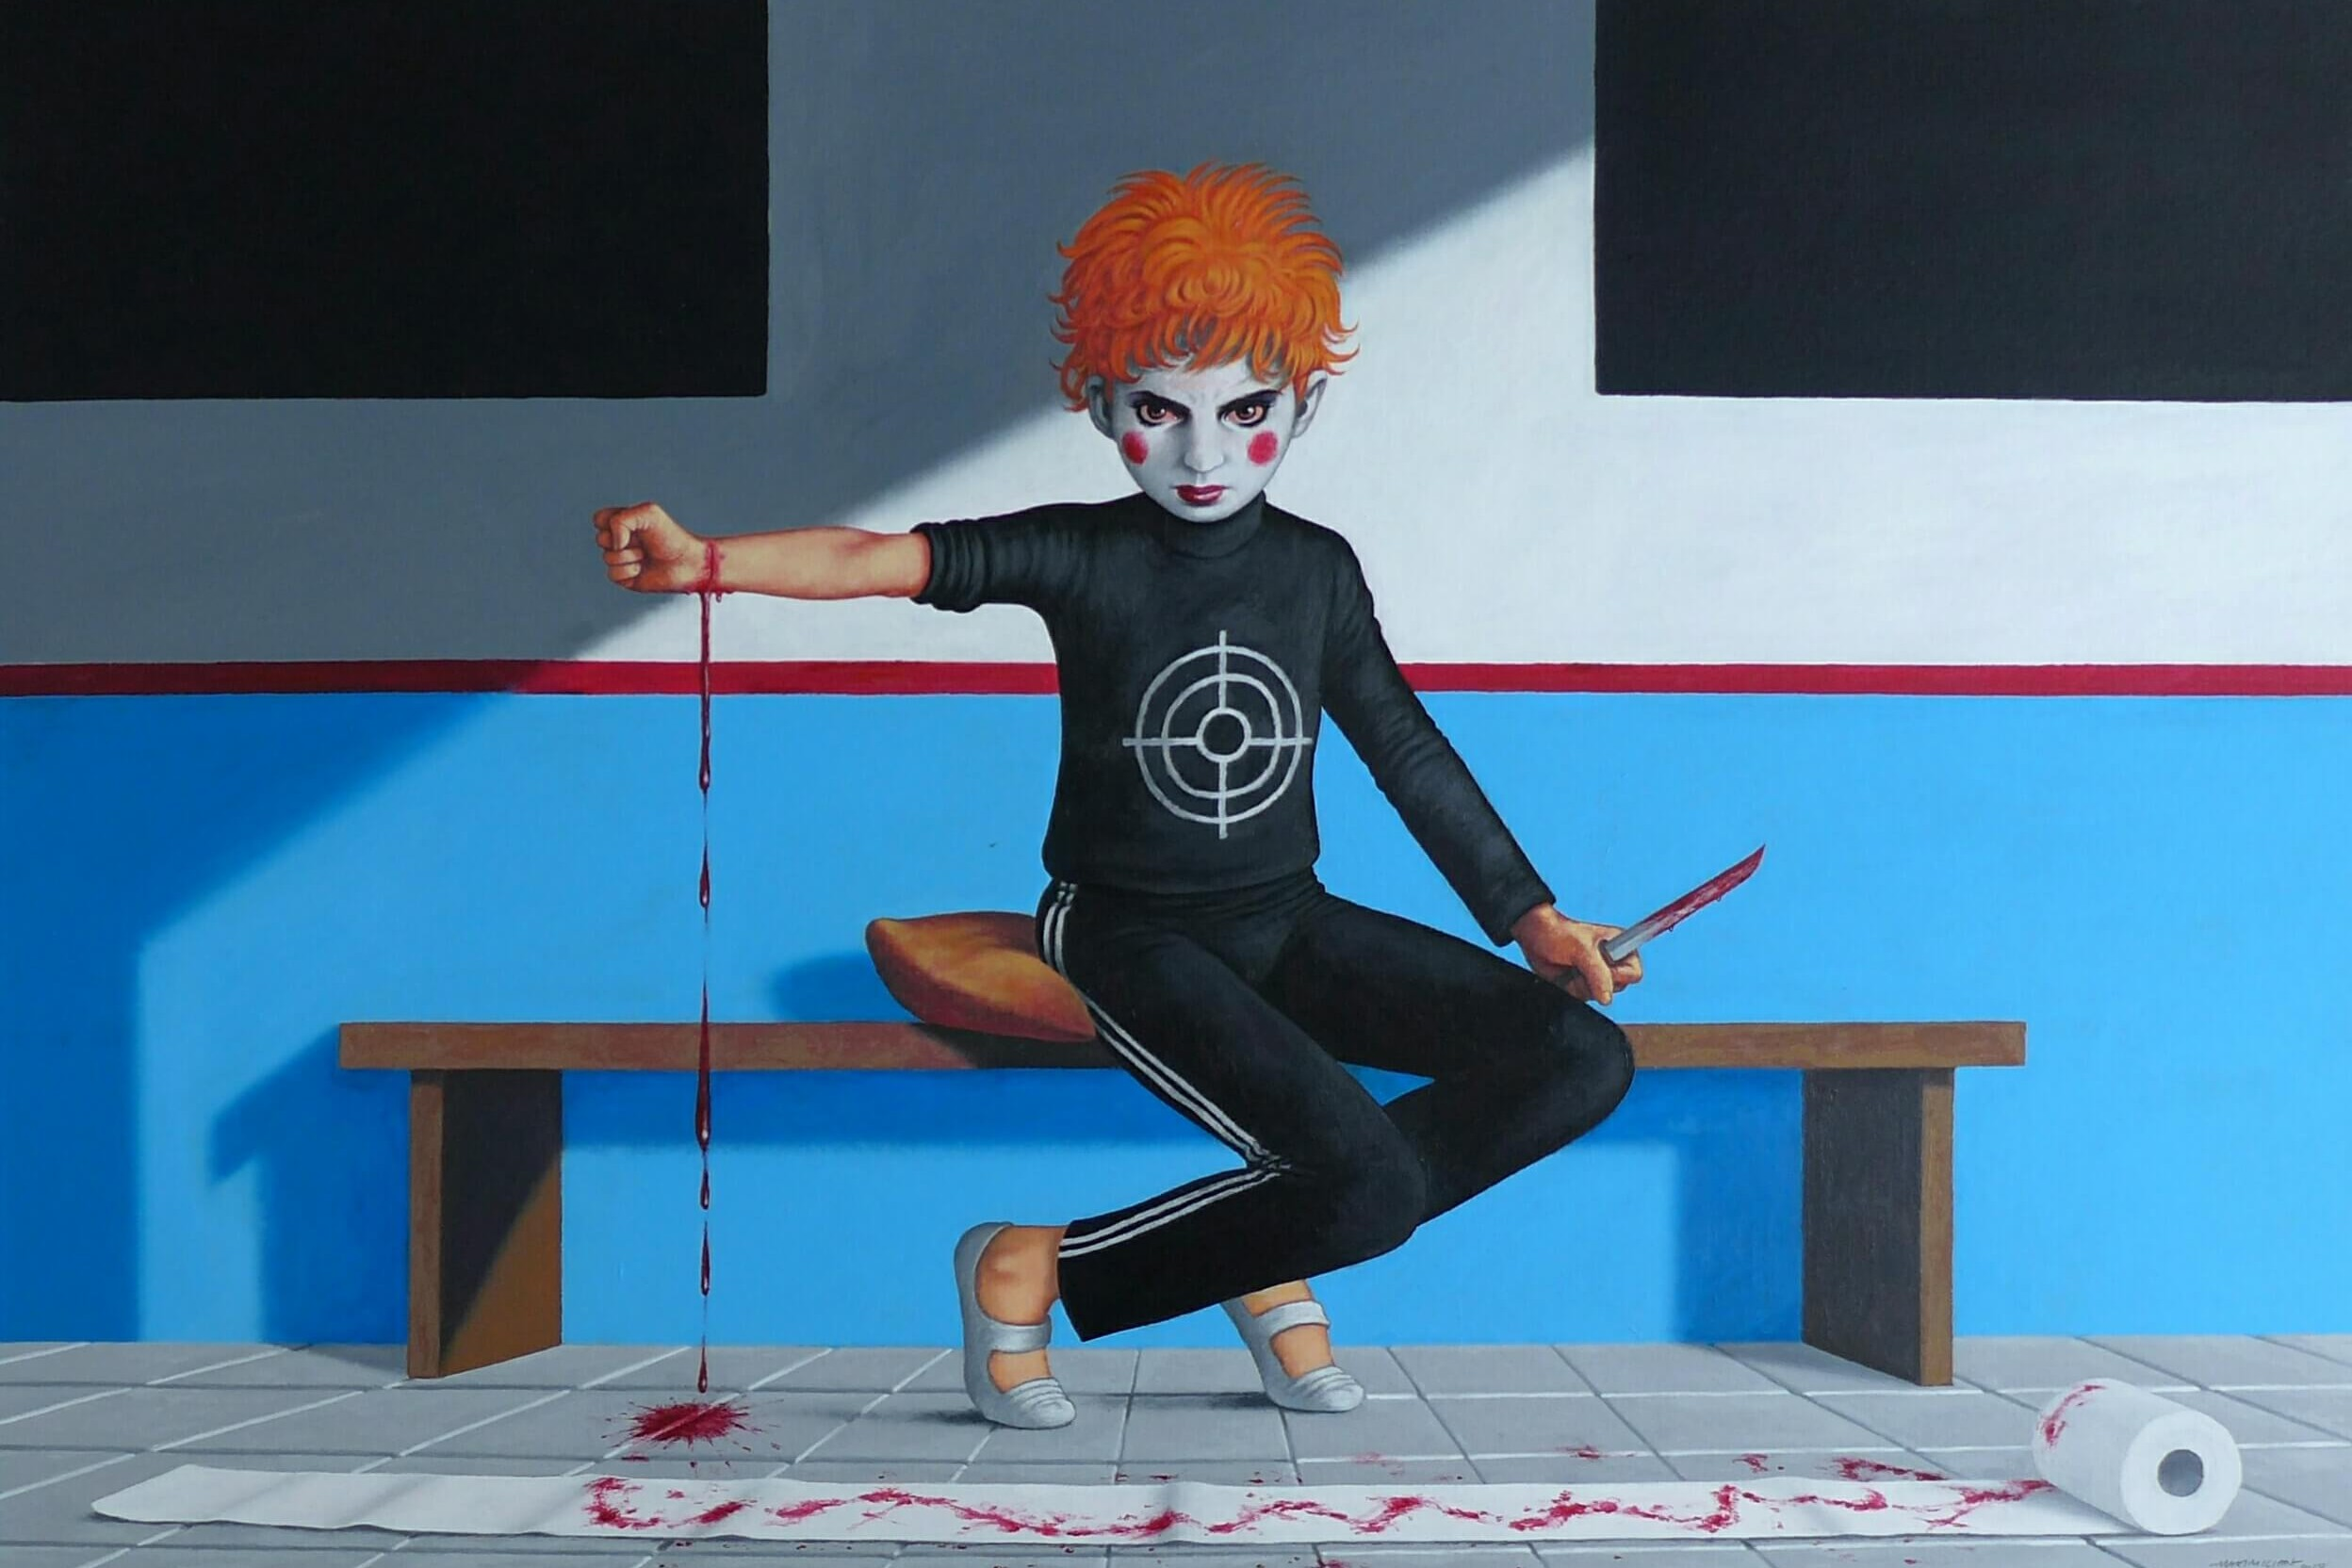 Massimiliano Esposito - Paintings the south west collective of photography boy dressed as clown cutting his own wrists